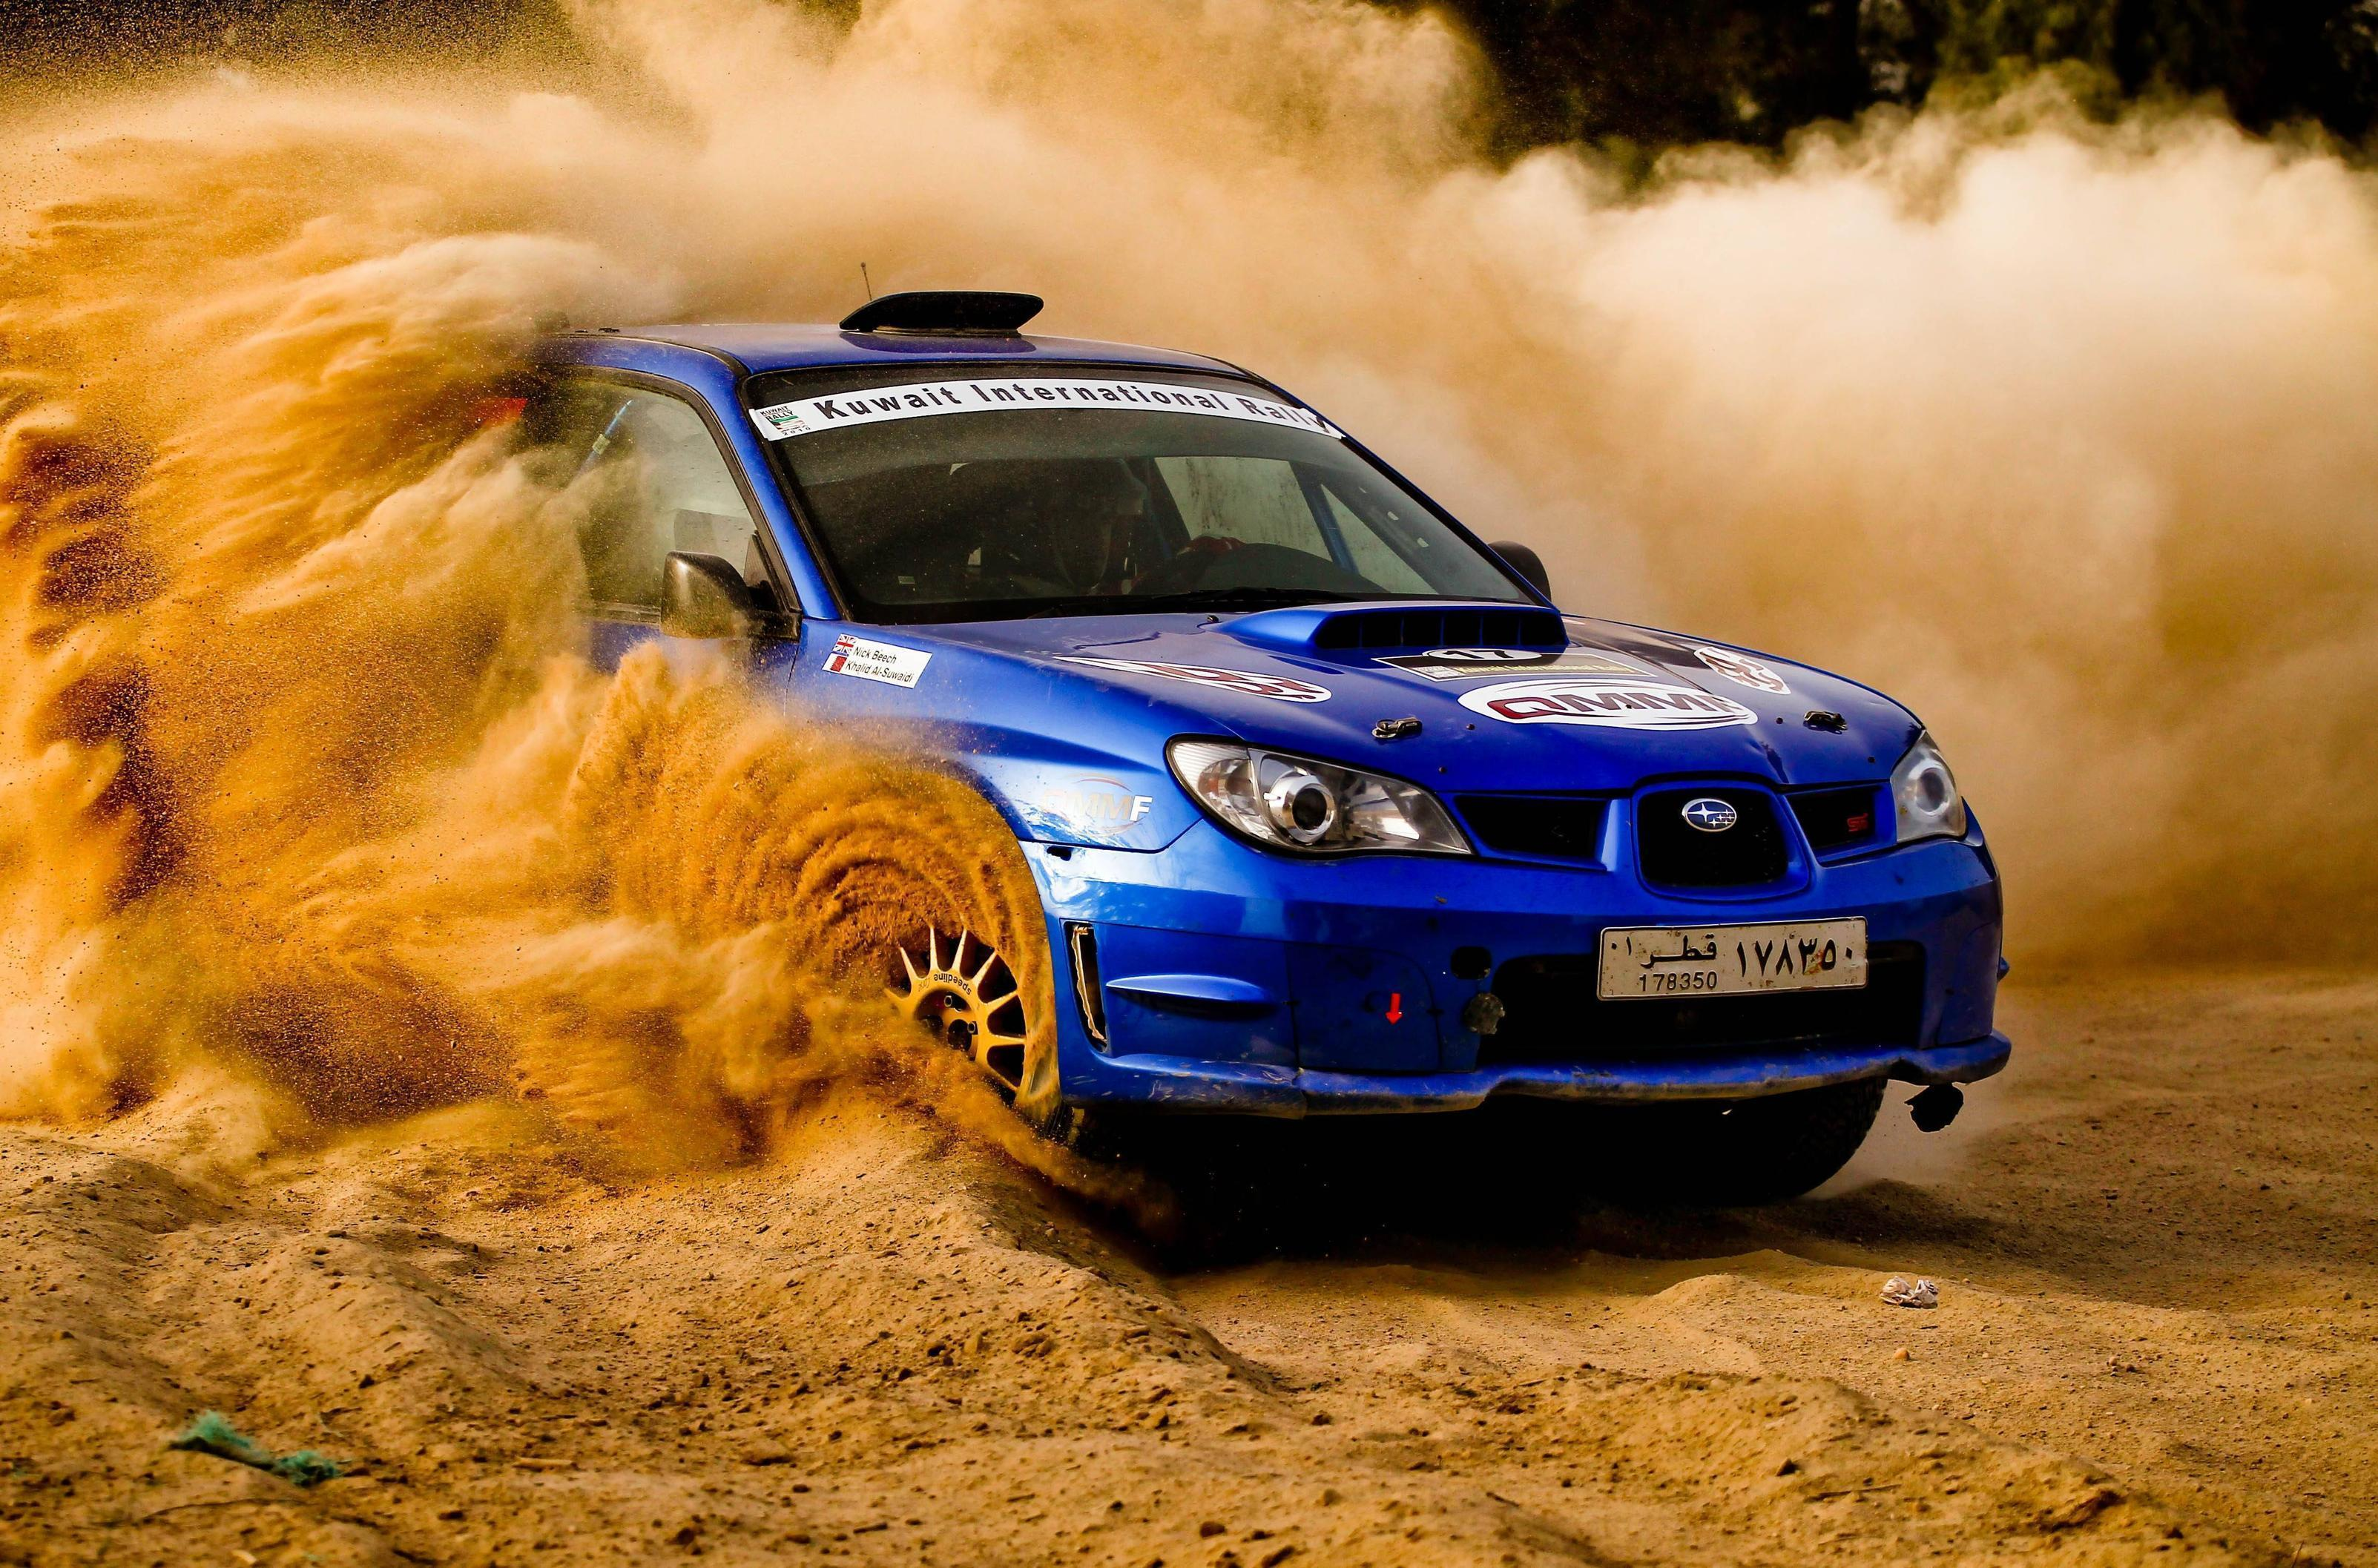 Subaru Rally Car Wallpapers Top Free Subaru Rally Car Backgrounds